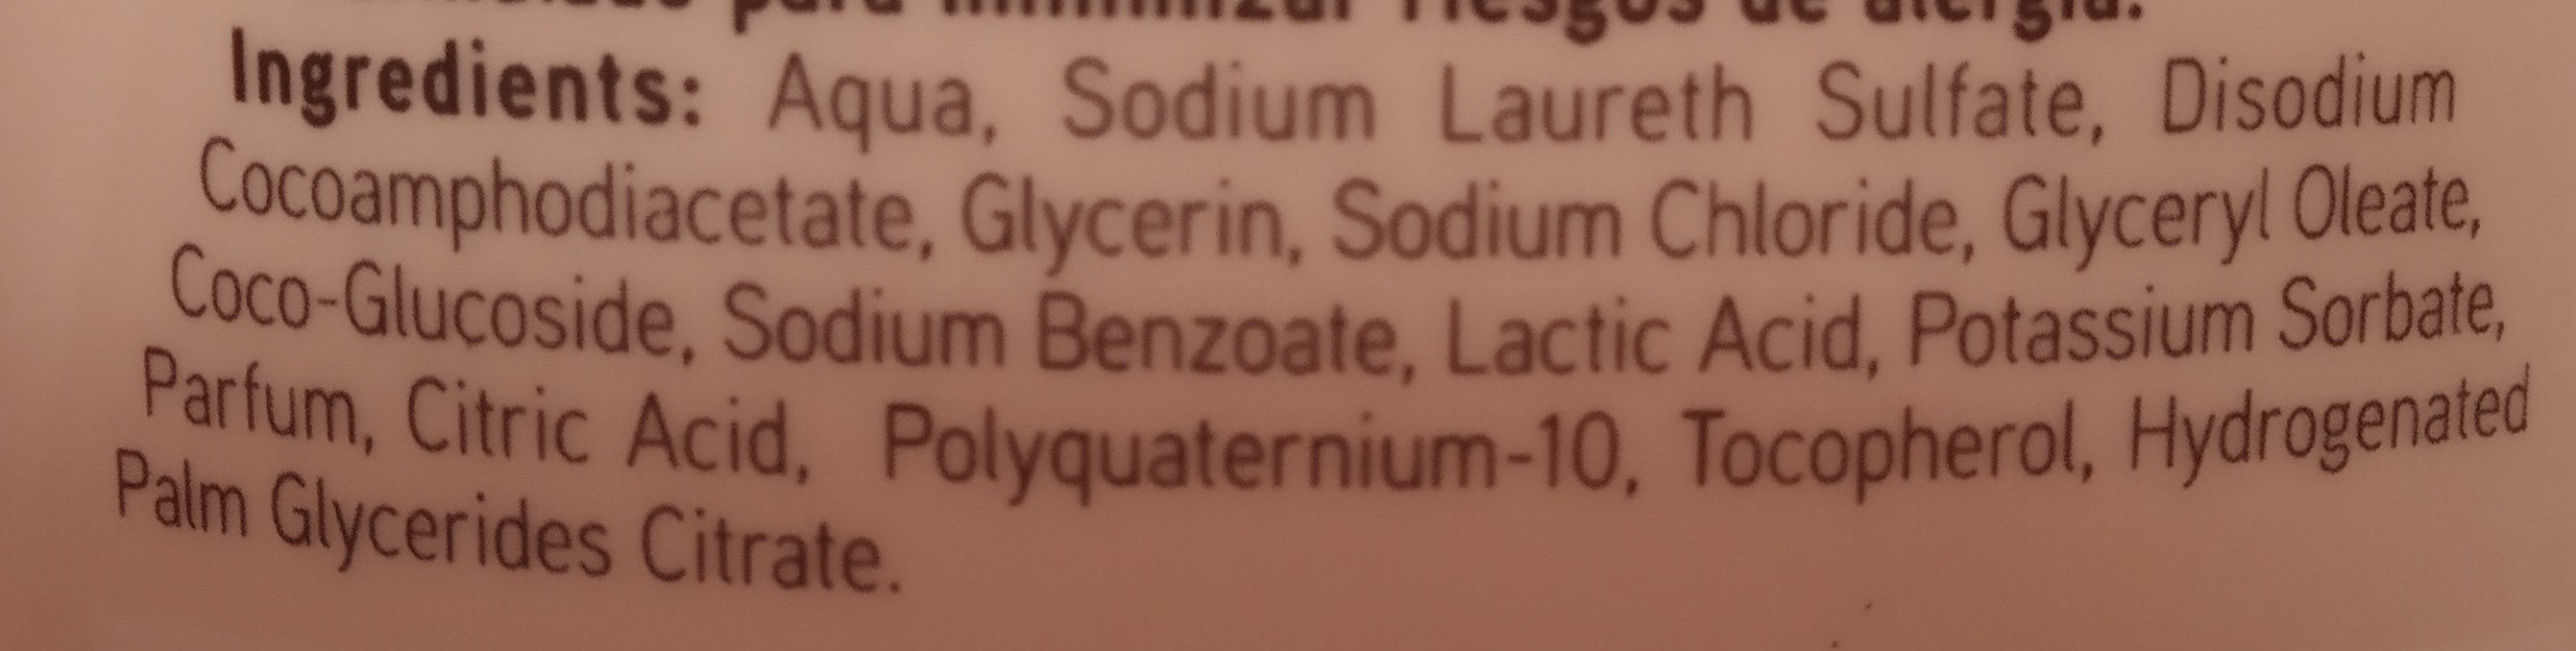 Gel intimo - Ingredients